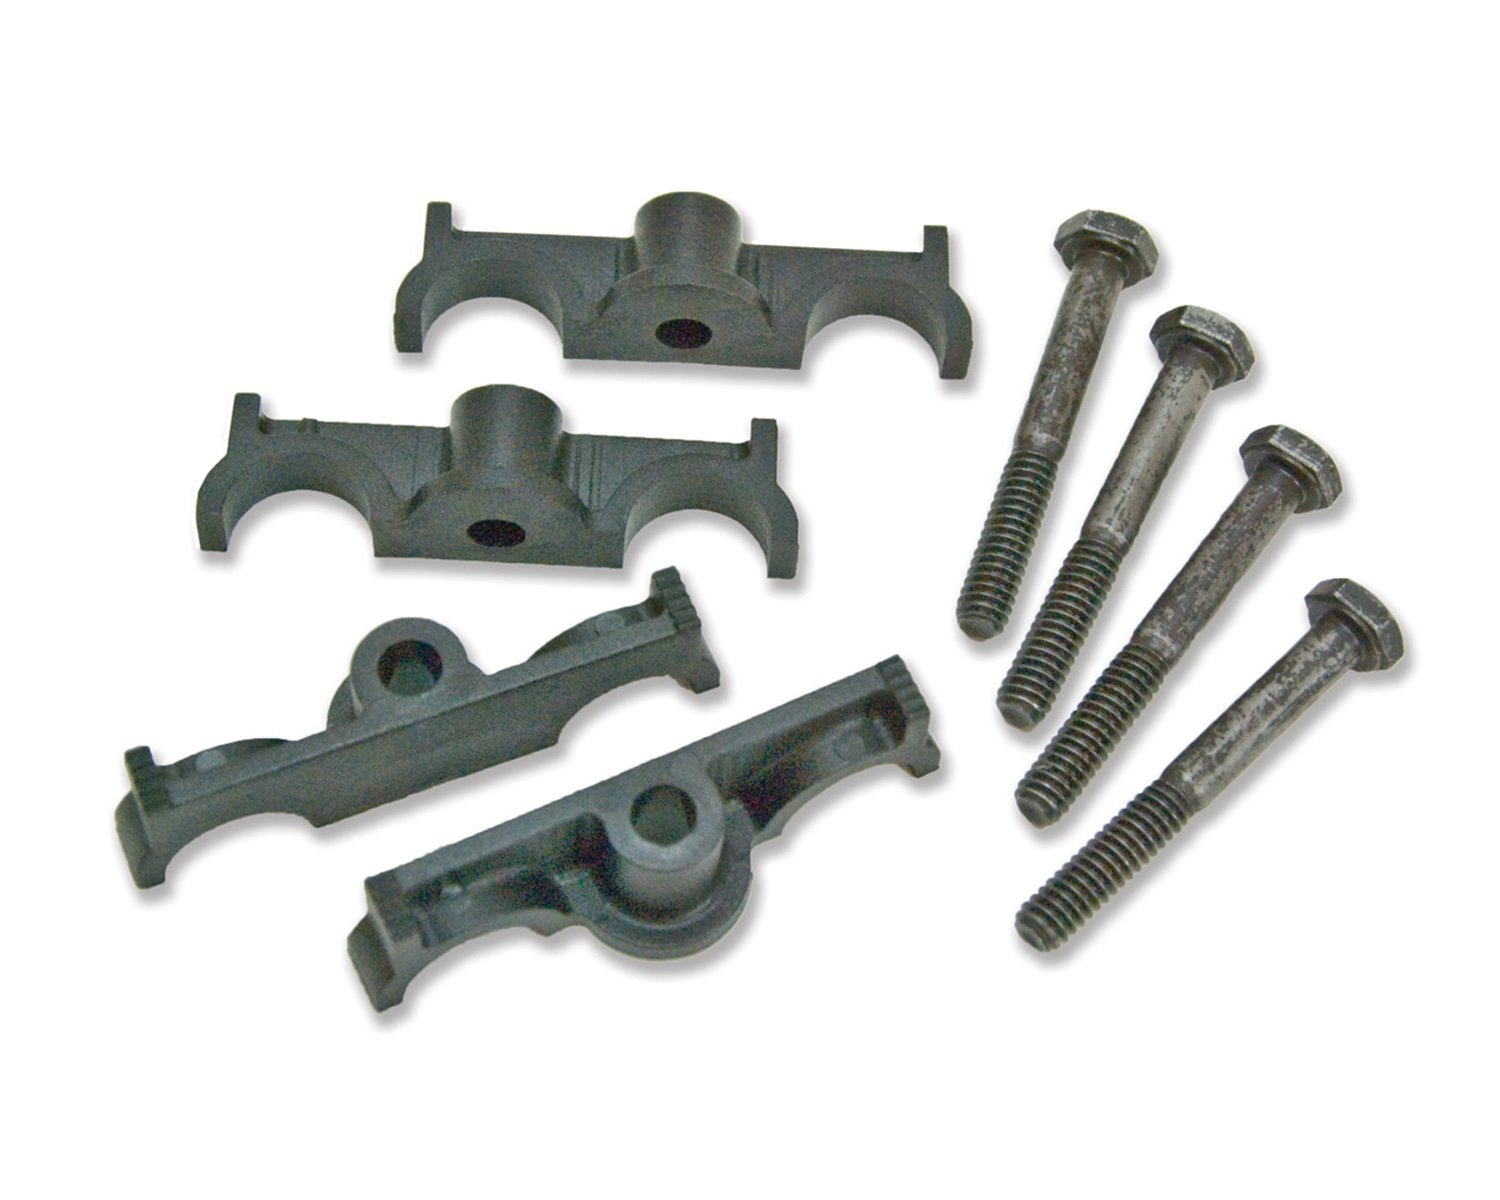 Flex-a-lite 3929 GatorClips Oil Cooler Mounting Clamps - Set of 9